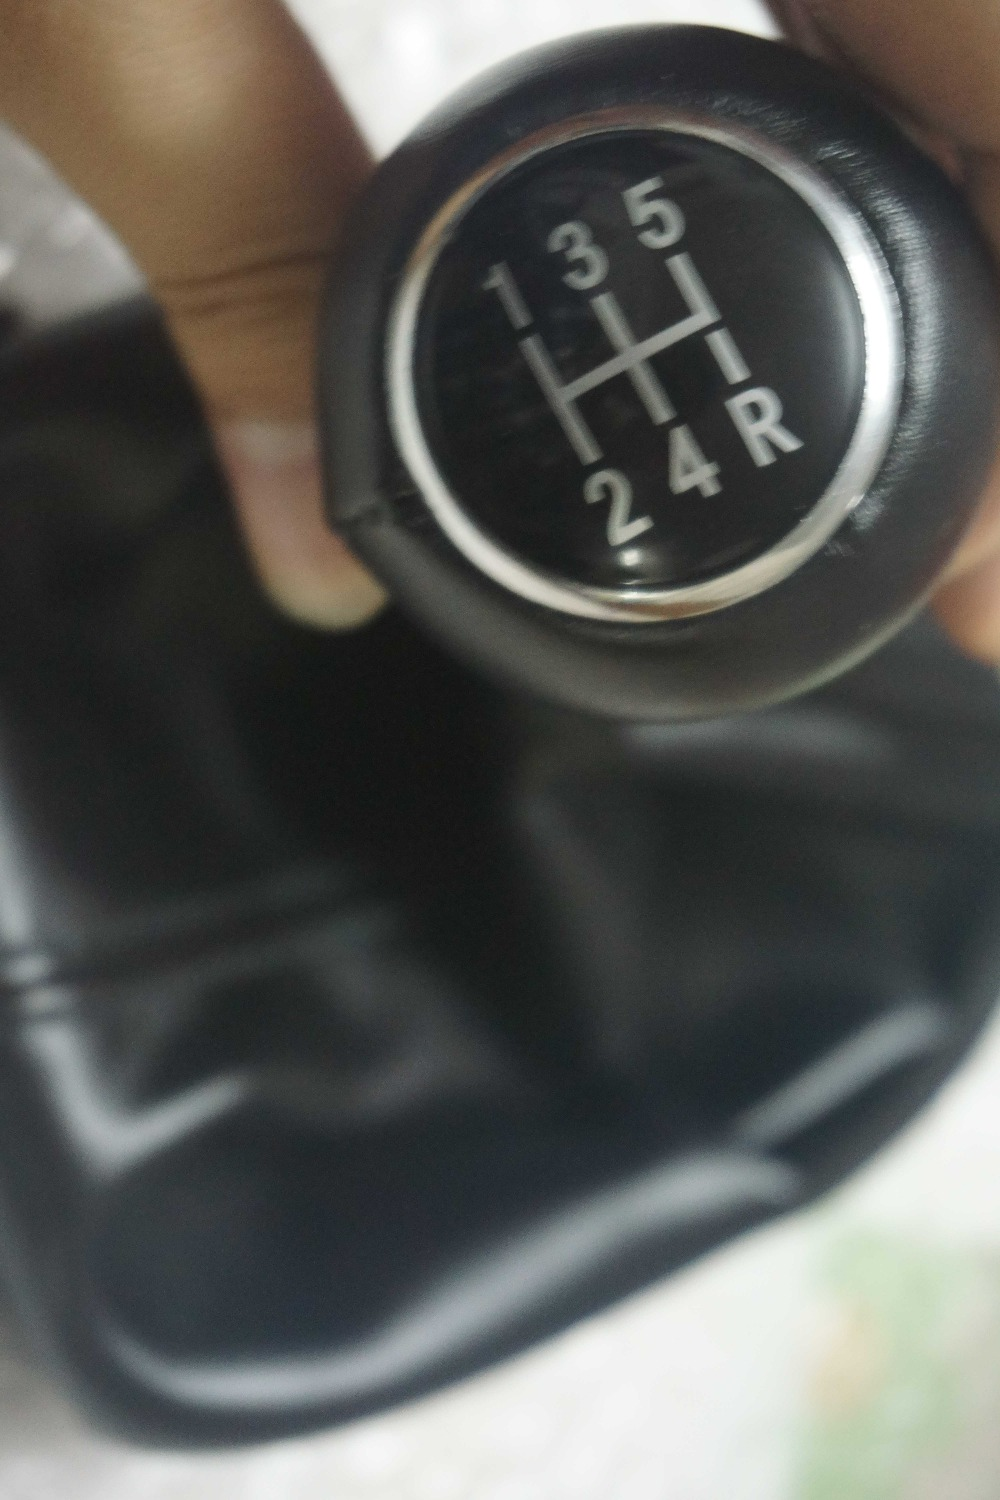 fat oem: 4b0863279a new 5 speed gear shifter knob gaitor boot for audi a6 c5 a4 b5 a8 d2 1996 1997 1998 1999 2000 2001 2002 2003(China (Mainland))